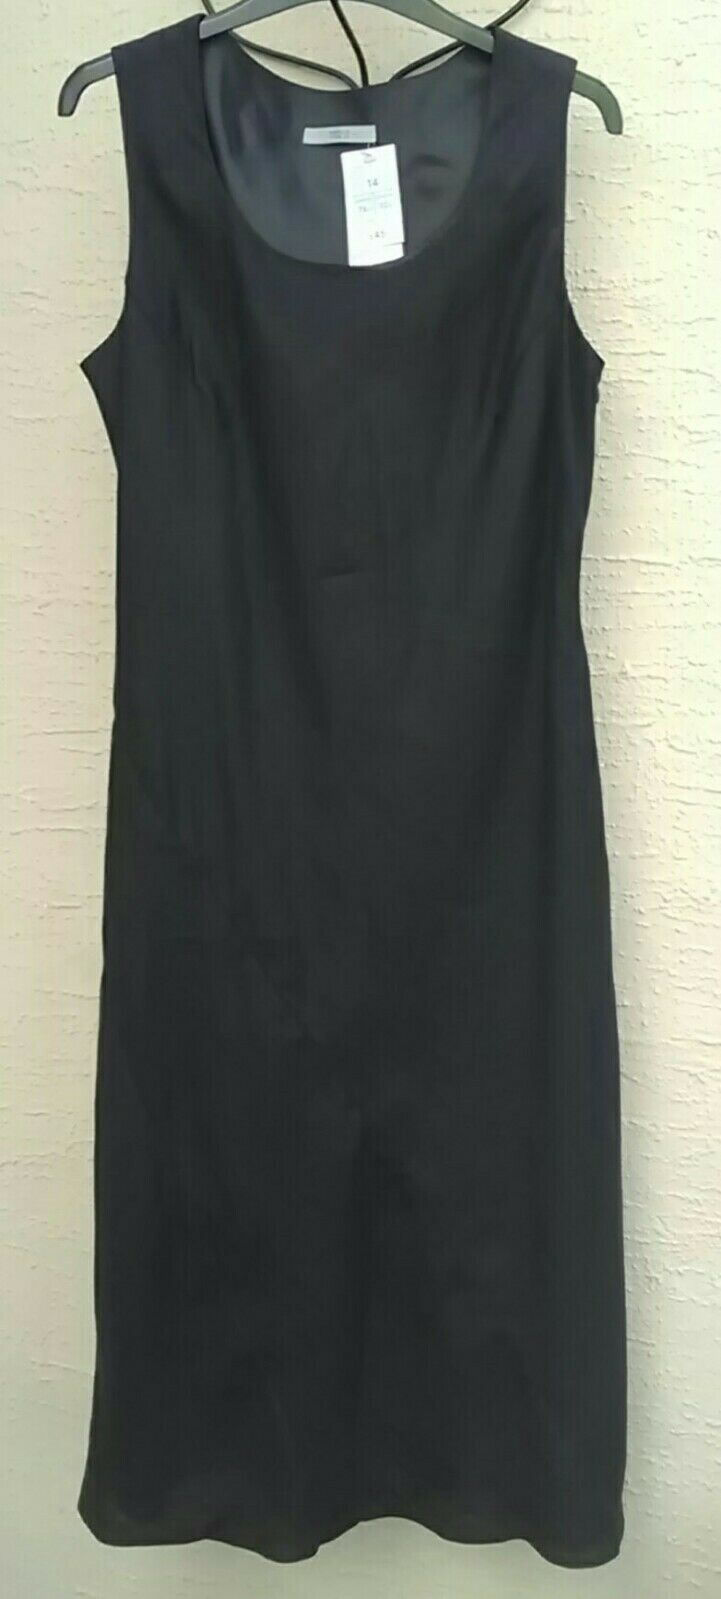 Ladies Marks & Spencer Linen Dress - Size 14 - New, RRP £ 45